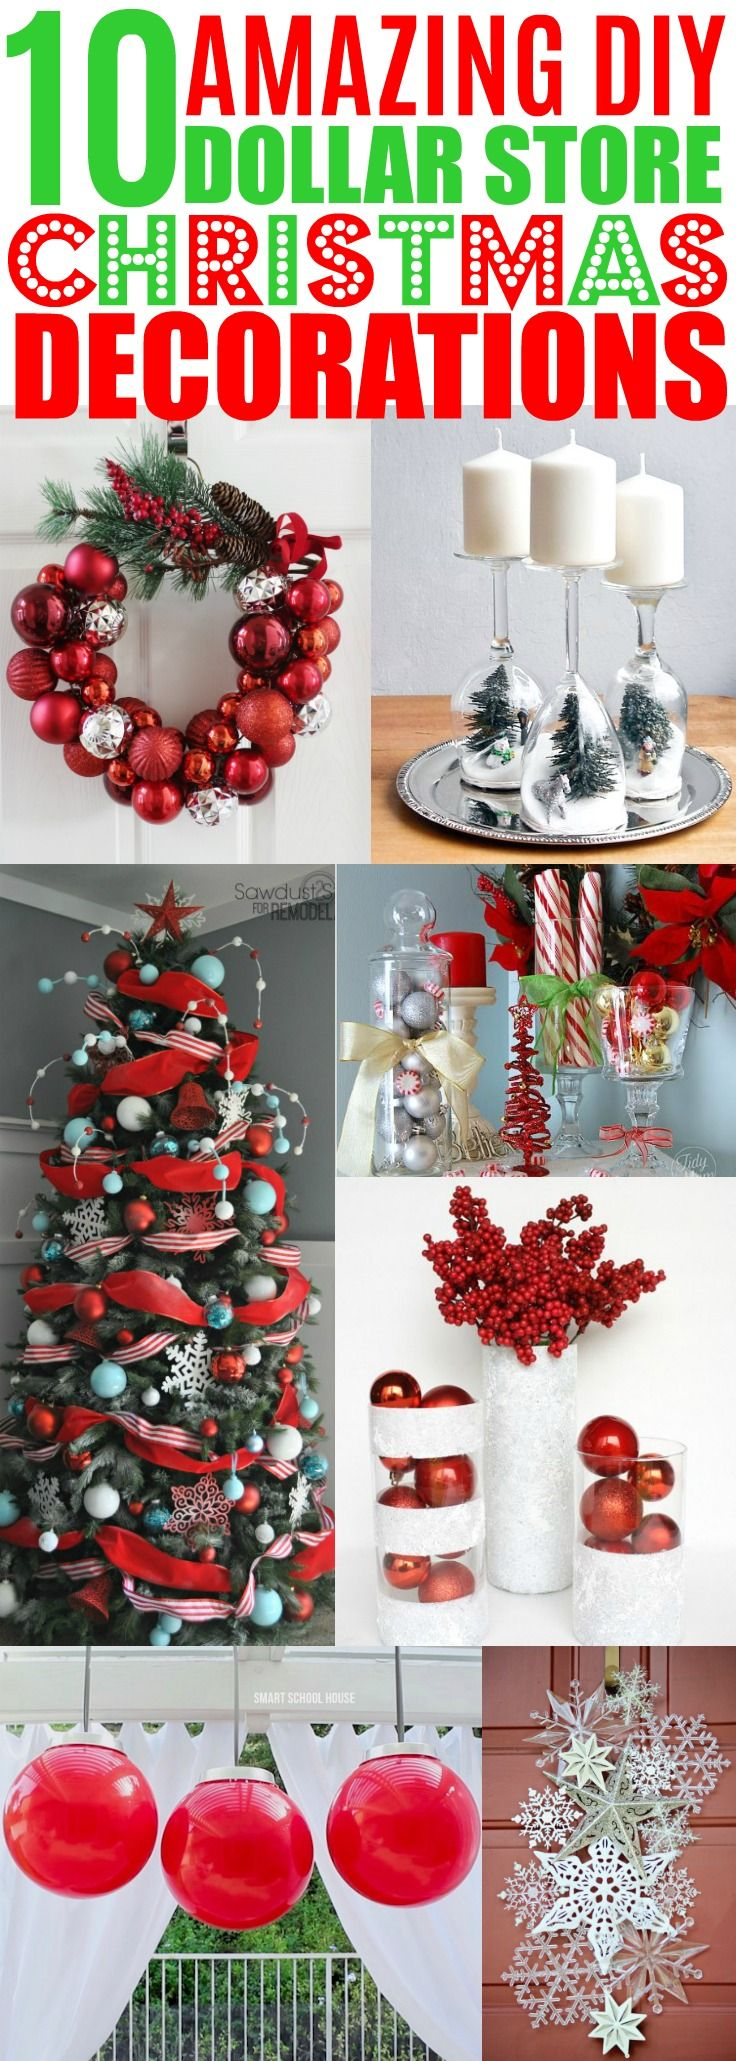 DIY Christmas Decorations Dollar Store, Cheap Christmas Decor Ideas